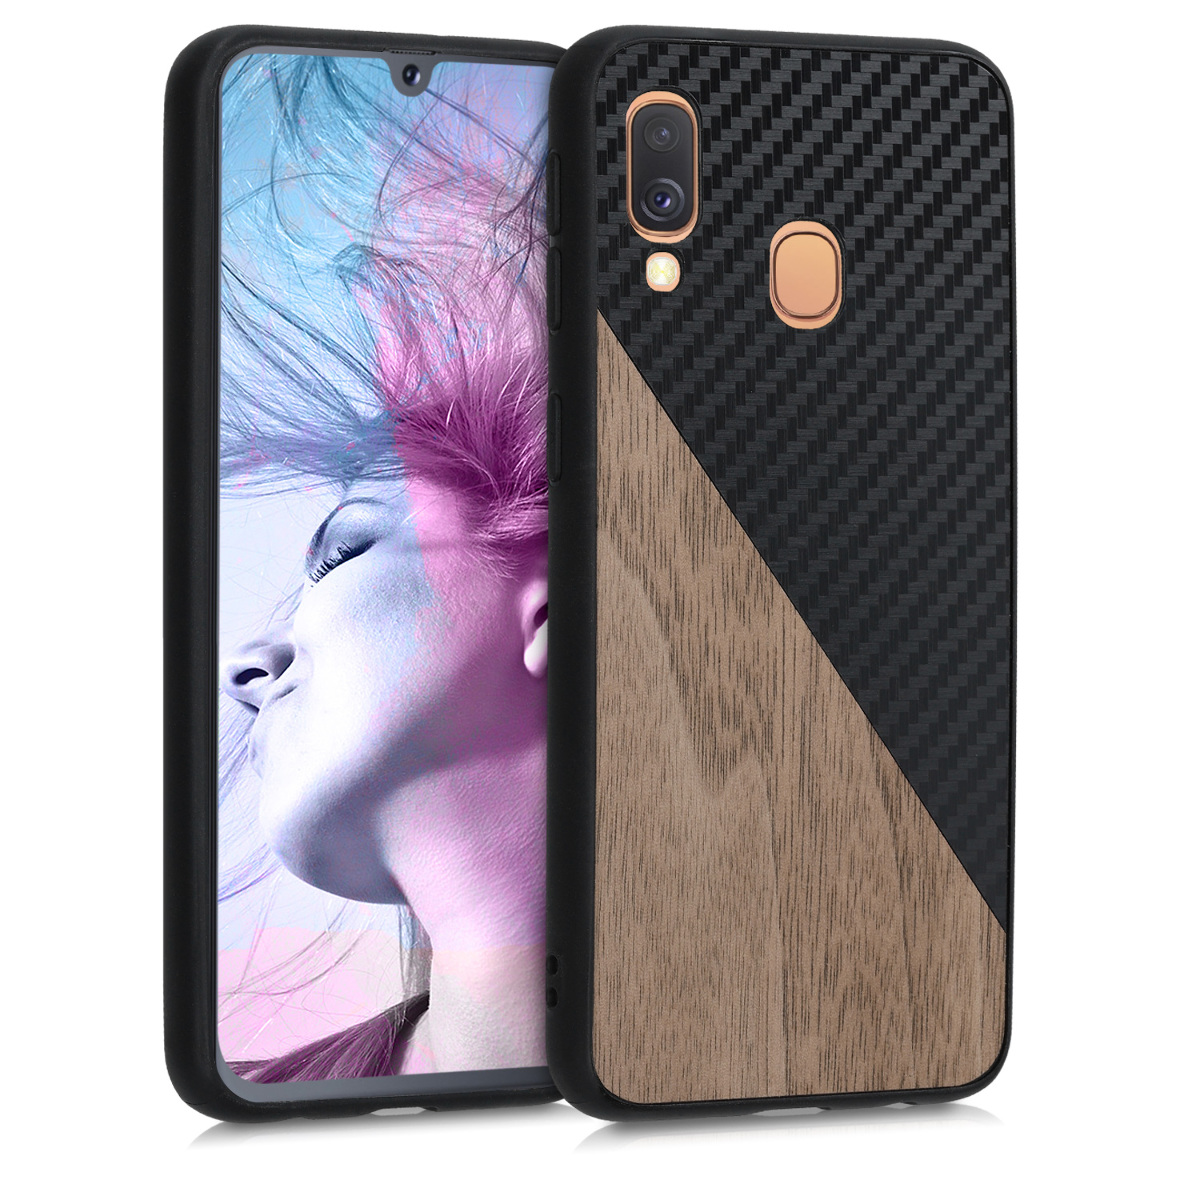 KW Σκληρή Θήκη Samsung Galaxy A40 - TPU Bumper and Wood / Carbon Fiber Back - Dark Brown / Black (50997.01)